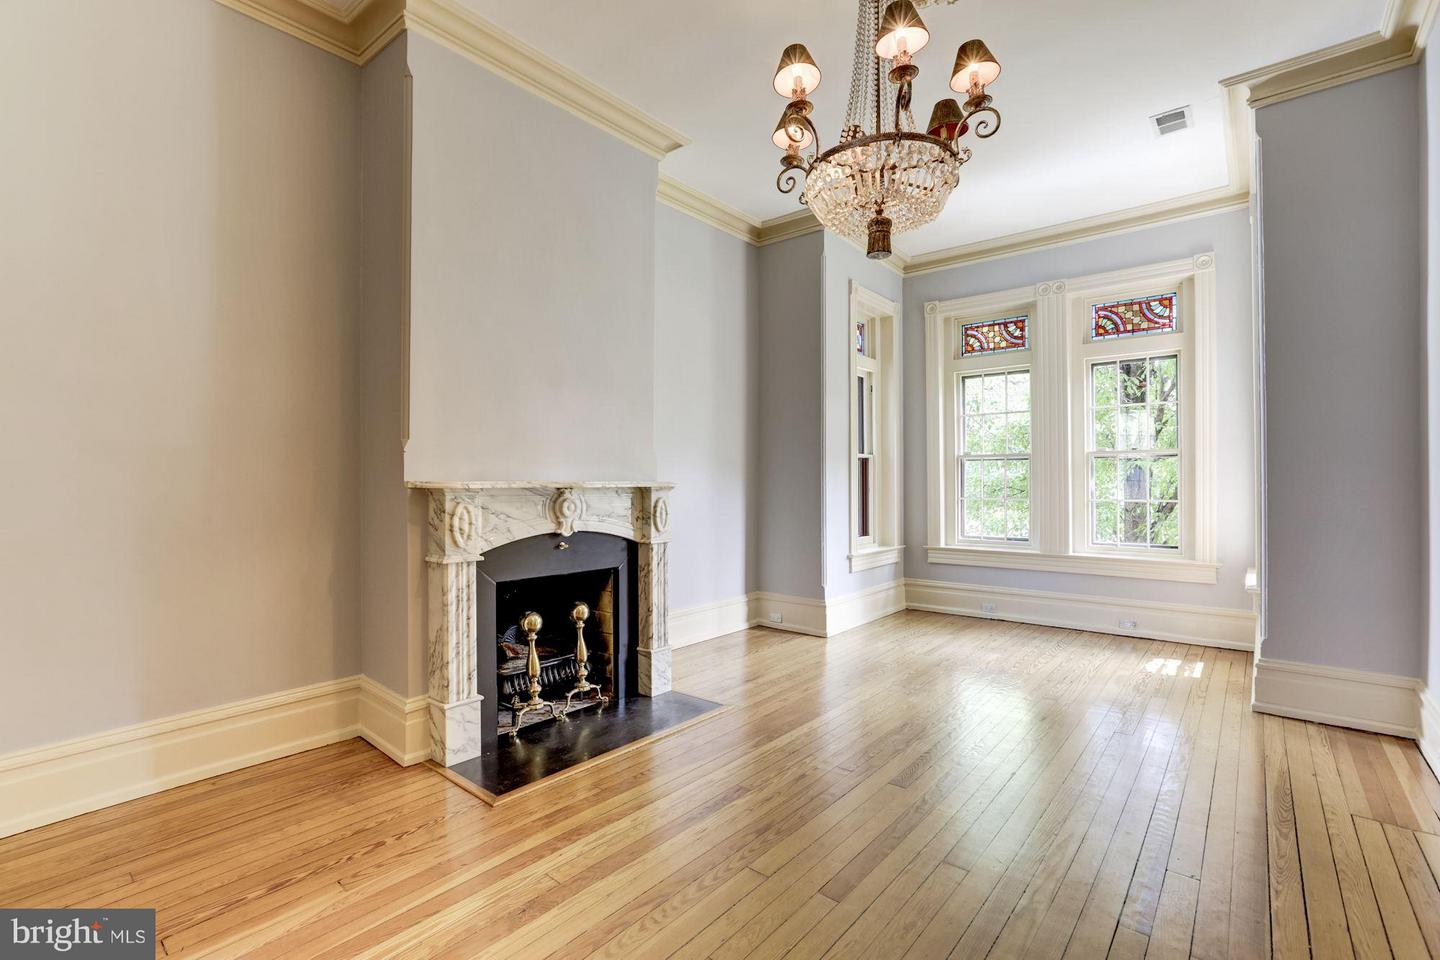 Other Residential for Sale at 218 Maryland Avenue NE Washington, District Of Columbia 20002 United States